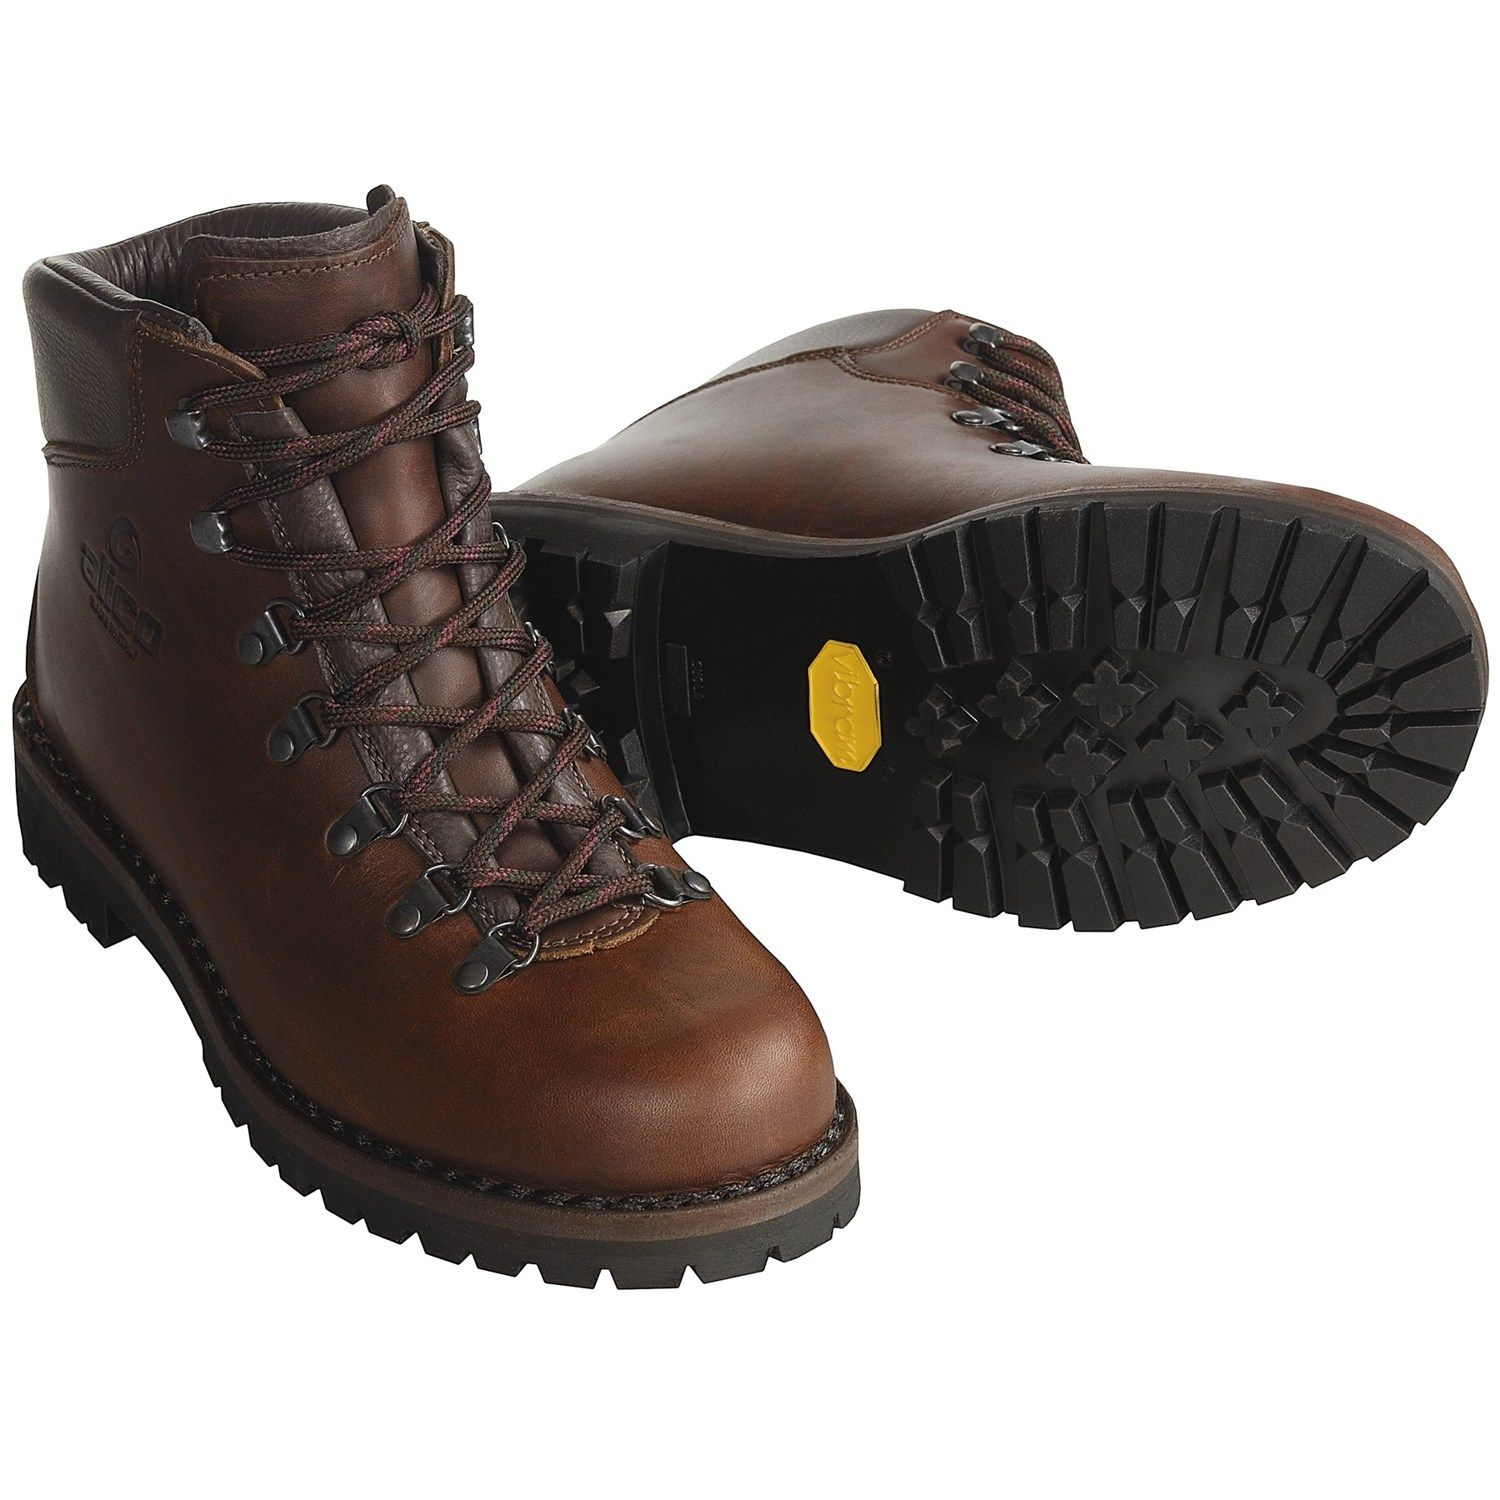 Alico Tahoe Hiking Boots - Leather (For Men) | Brown leather ...